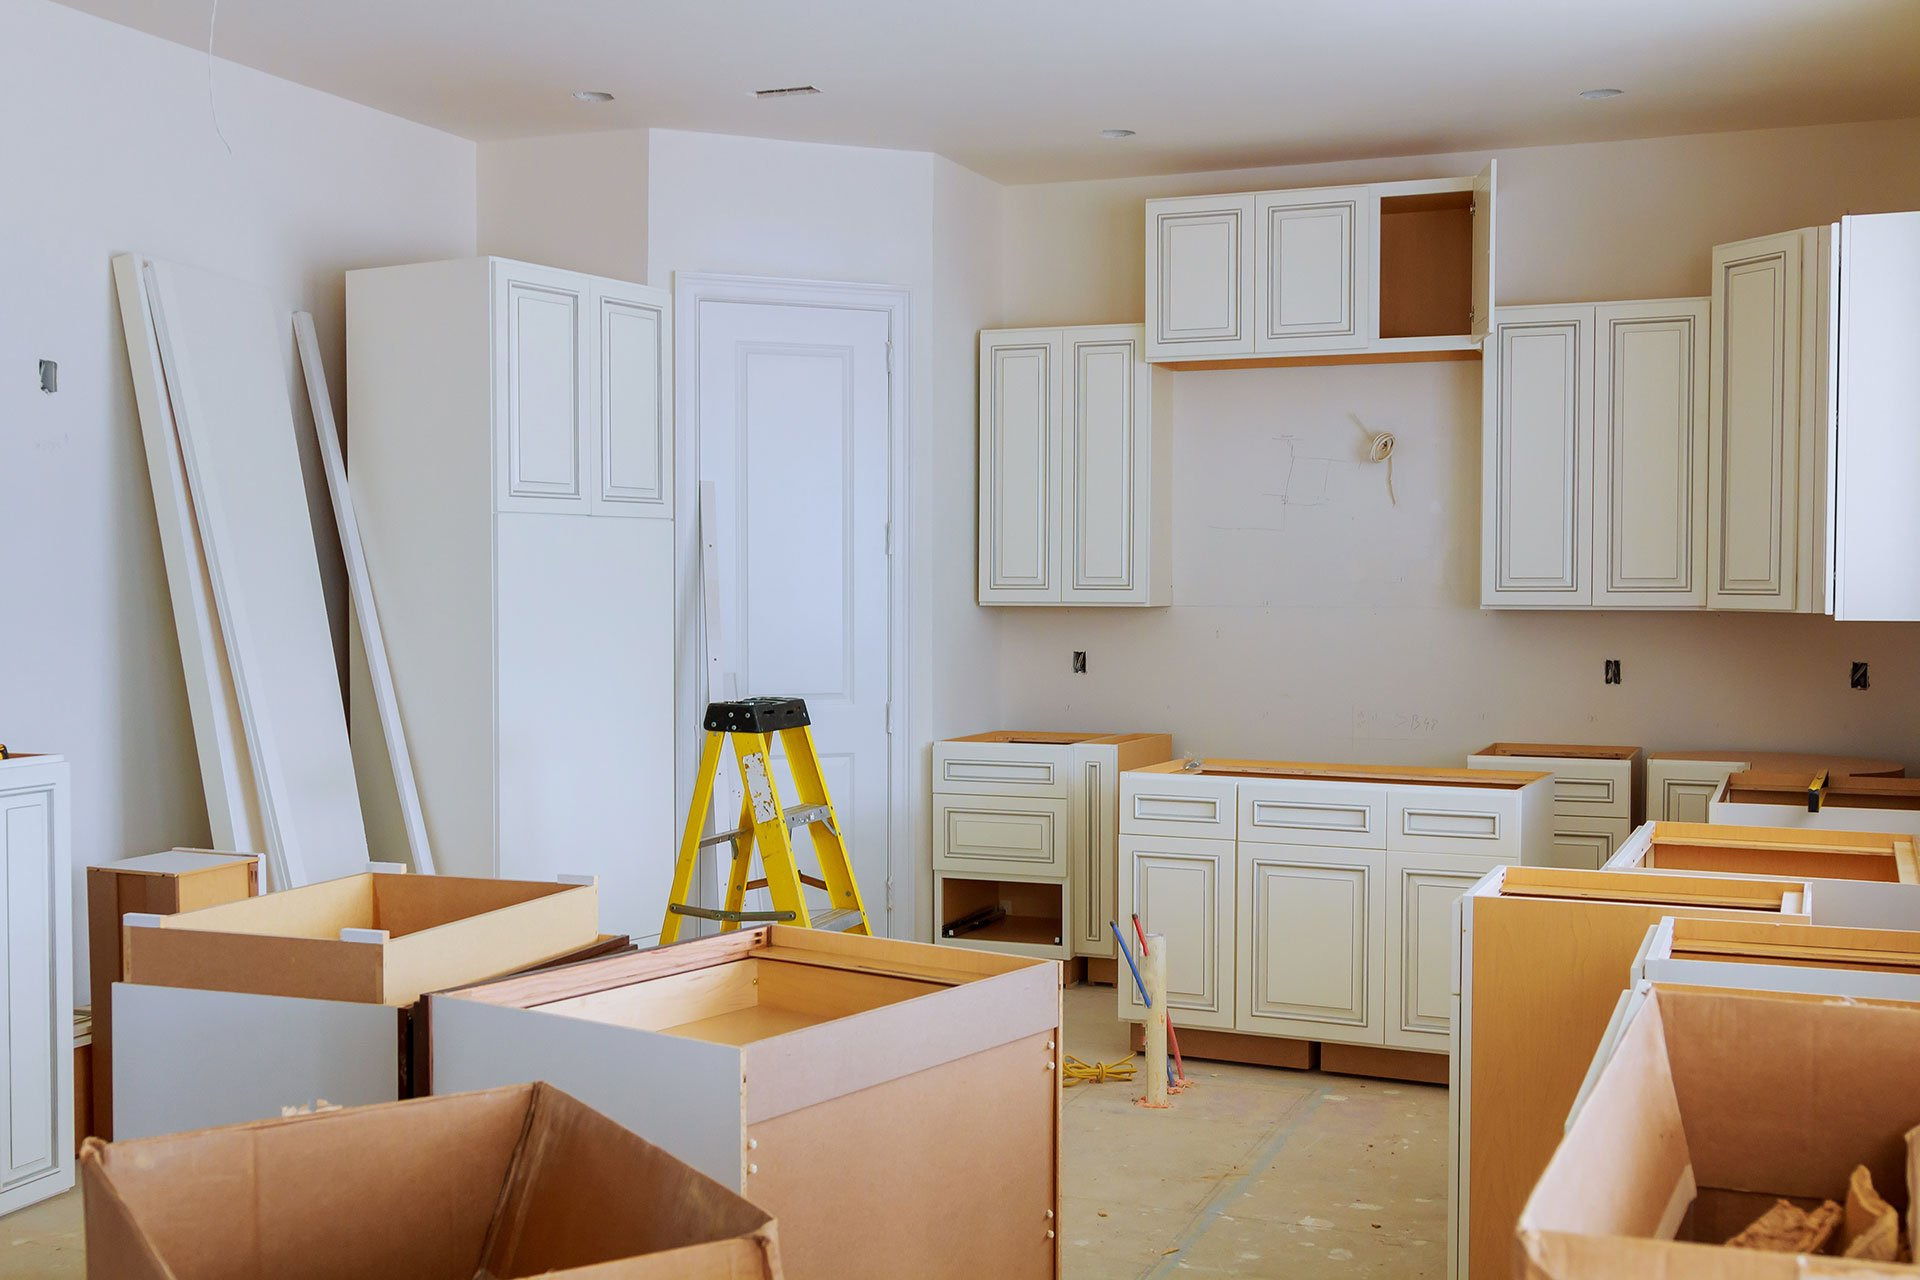 How Much Does Kitchen Cabinet Installation Cost?